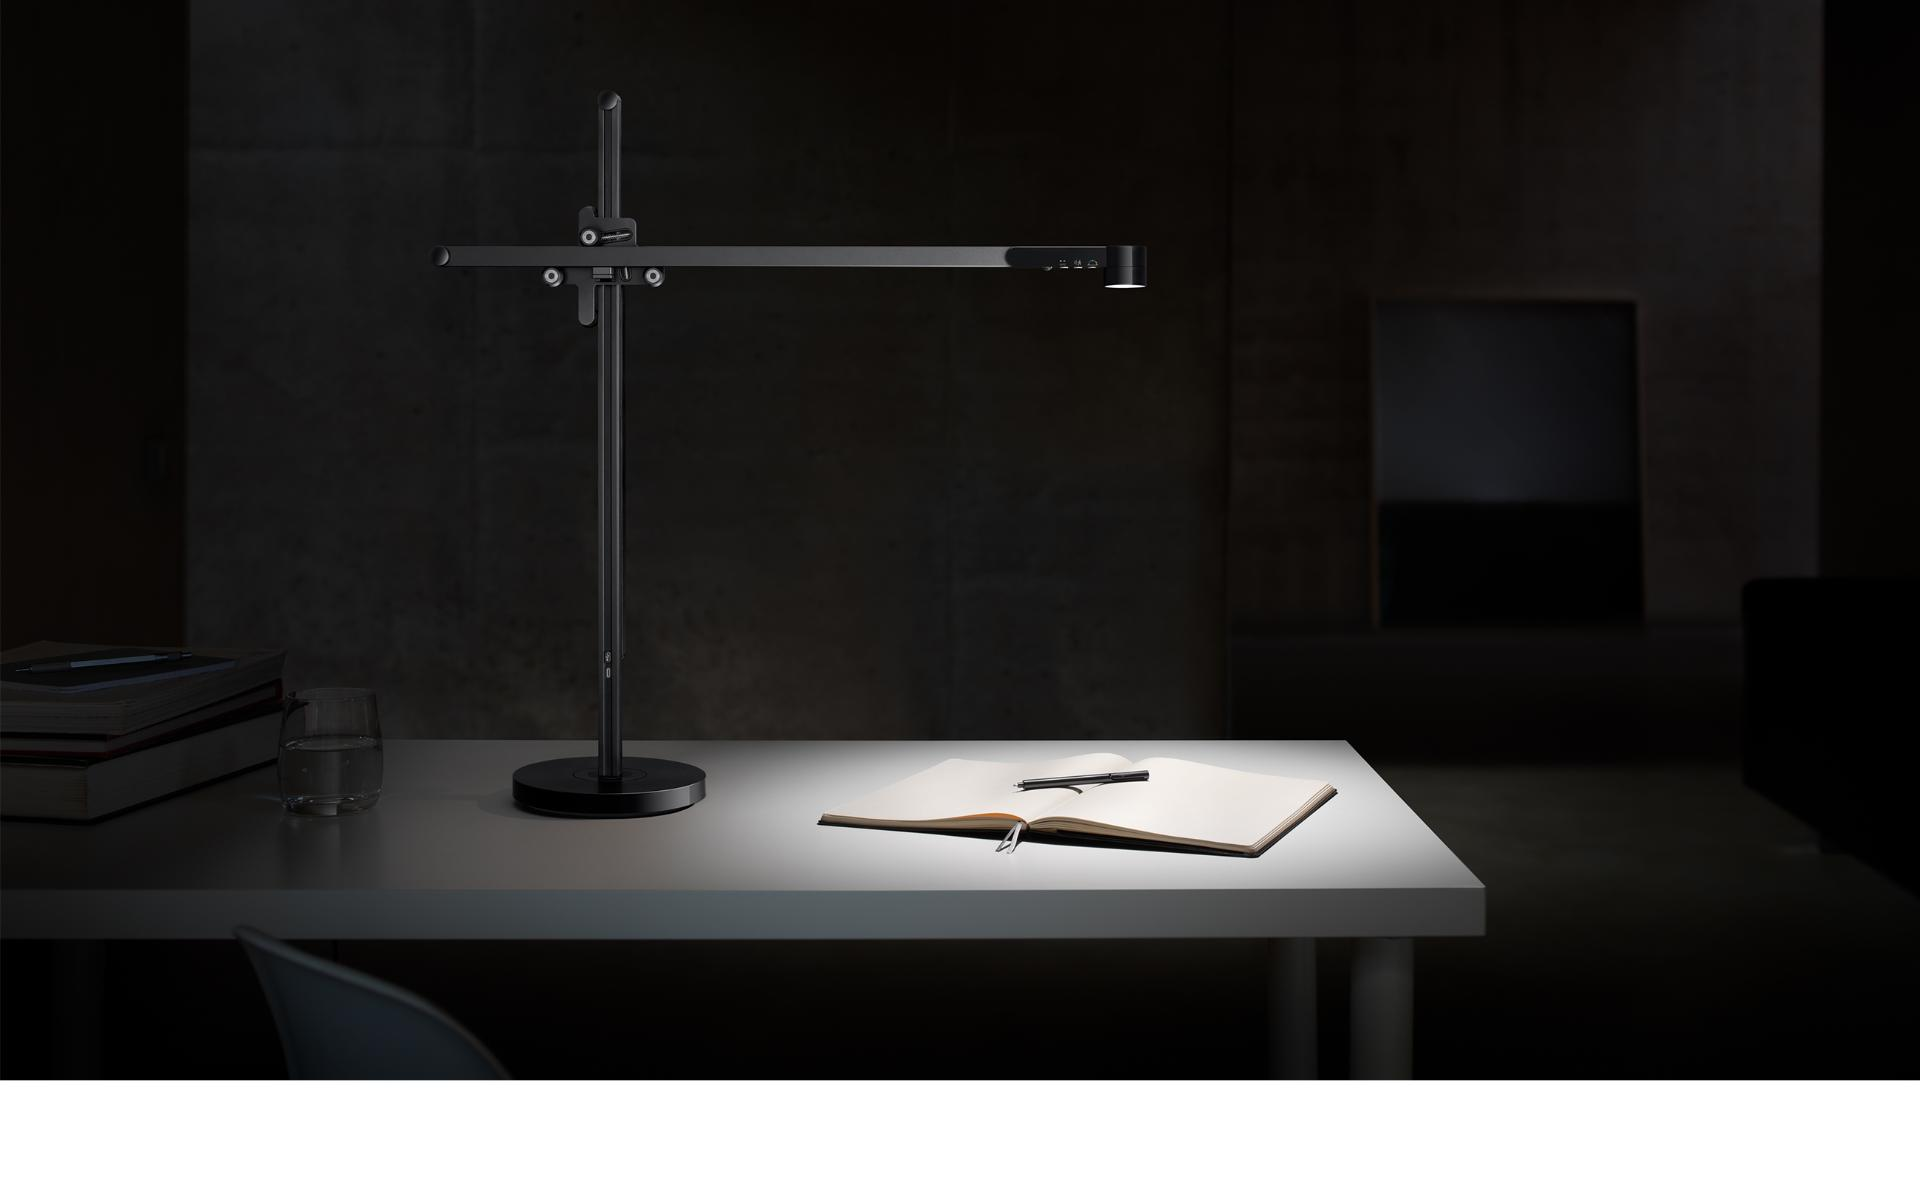 Dyson Lightcycle task light on a desk